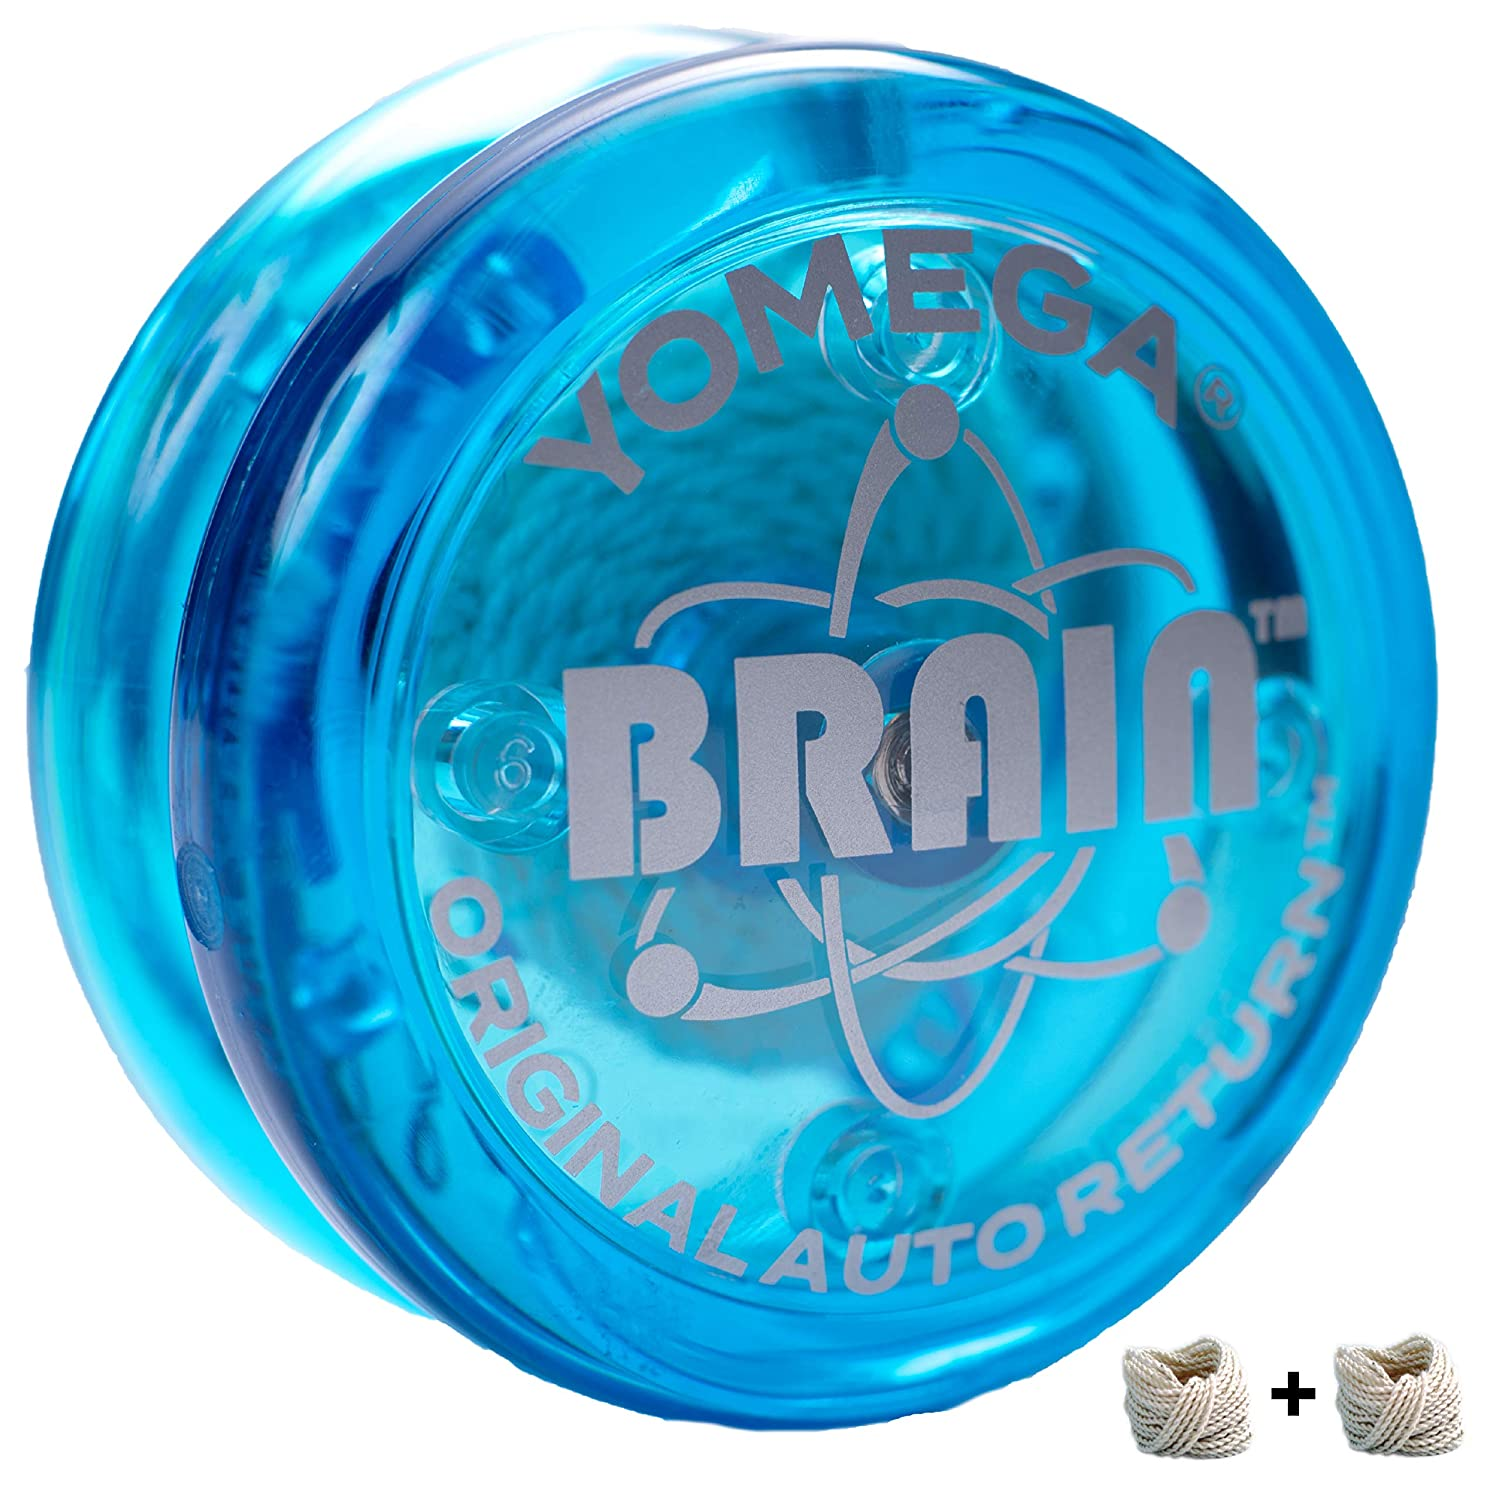 Yomega The Original Brain - Professional Yoyo for Kids and Beginners, Responsive Auto Return Yo Yo Best for String Tricks